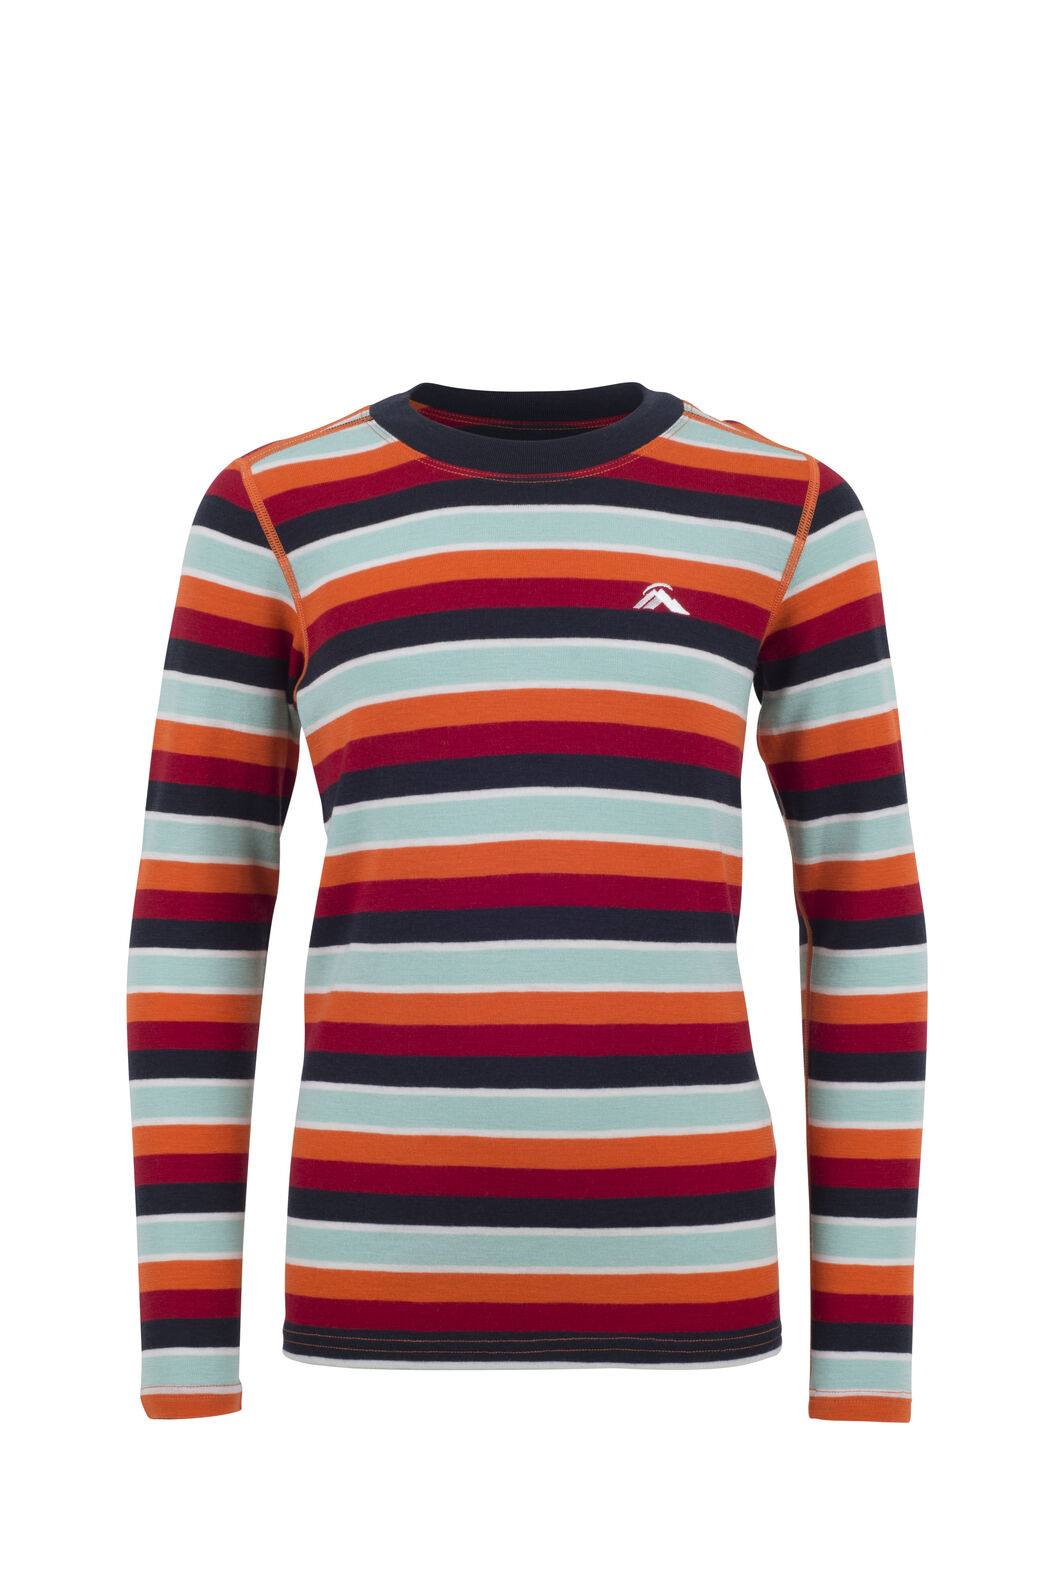 Macpac 220 Merino Long Sleeve Top - Kids', Orange Stripe, hi-res